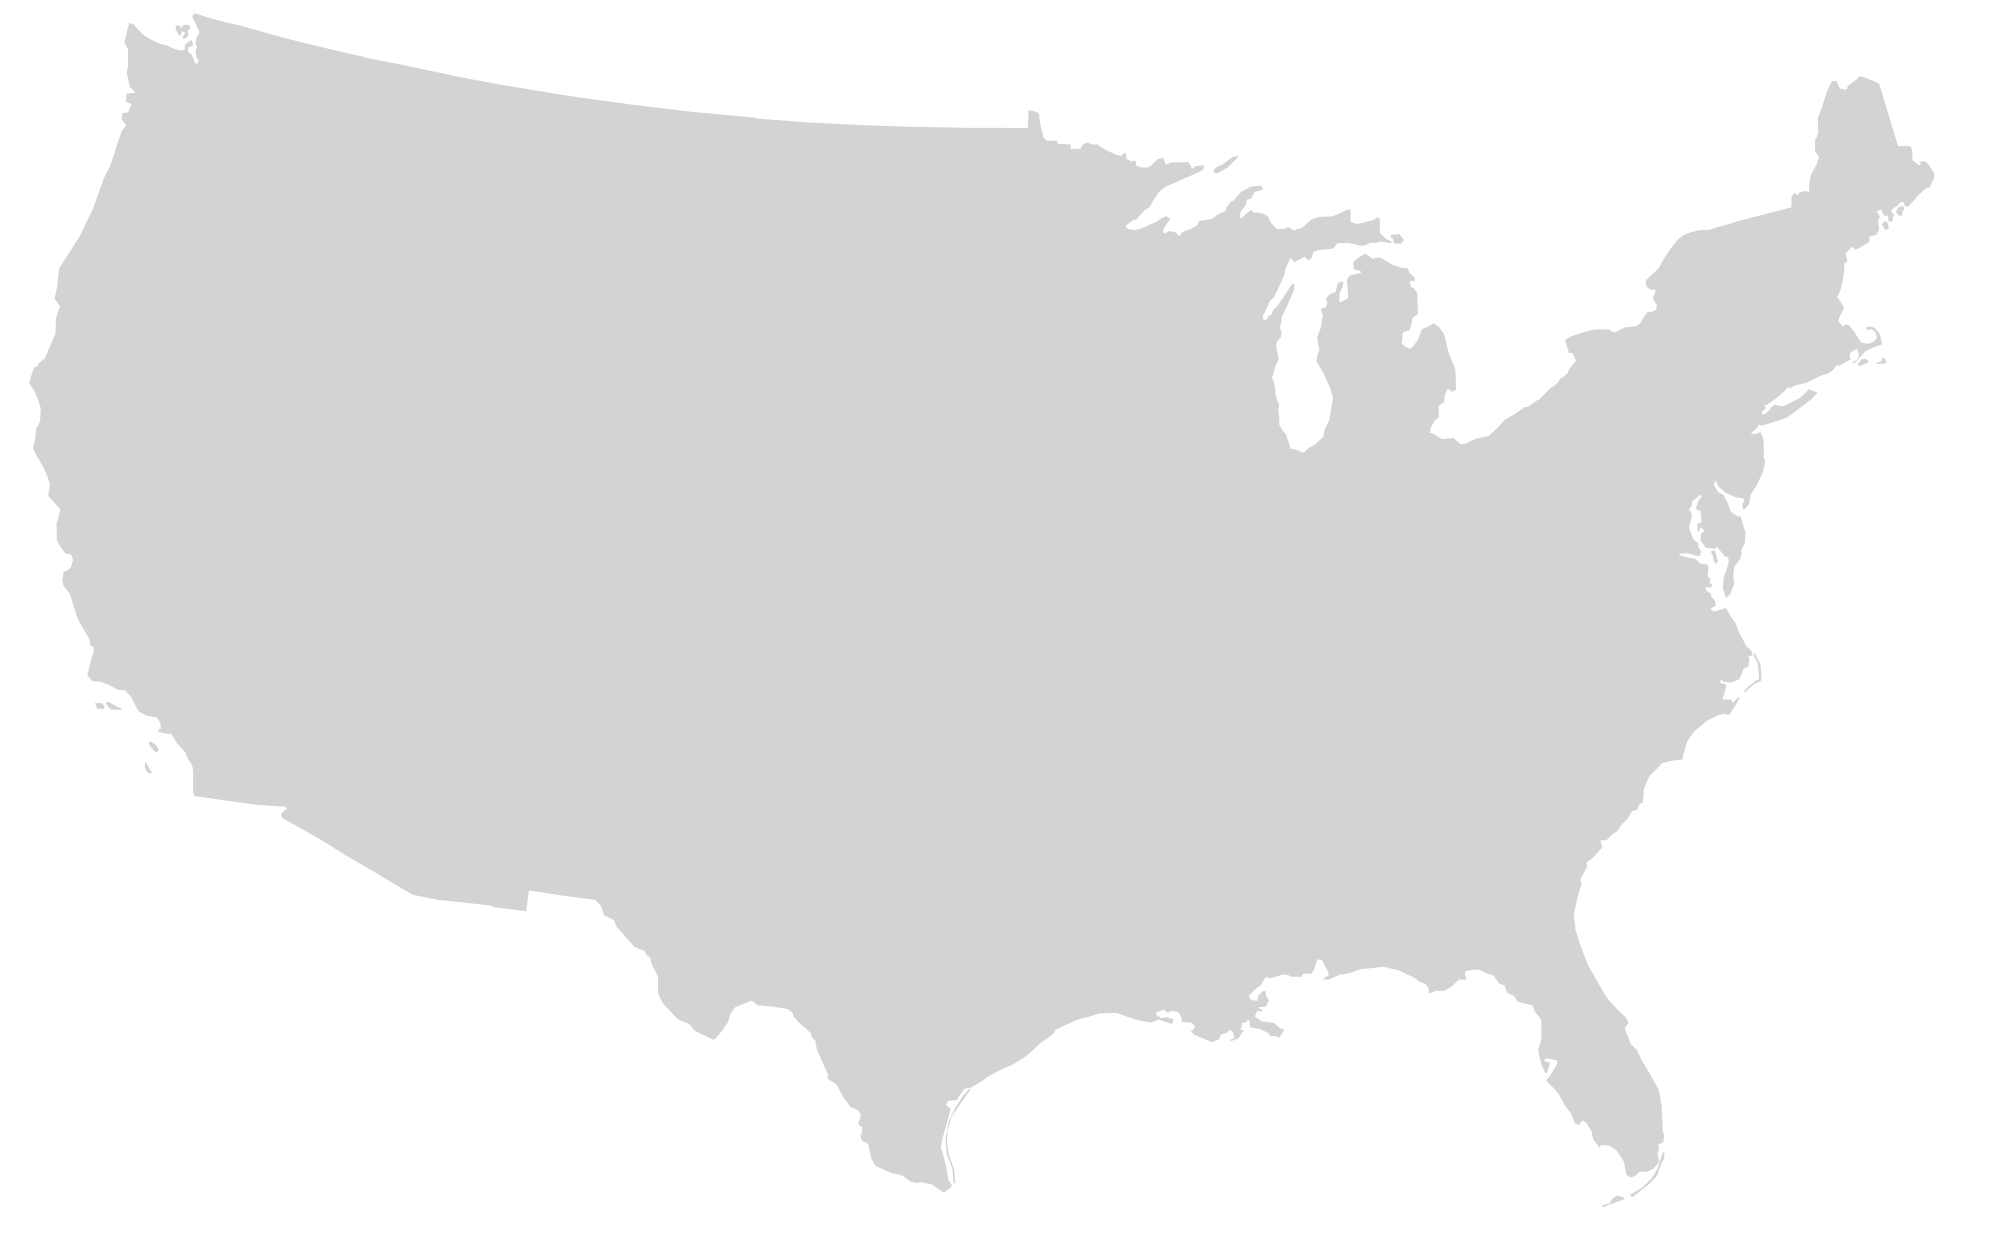 United States Clipart No Background.